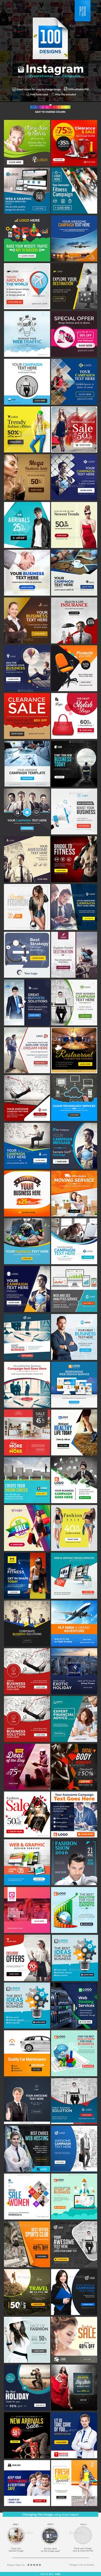 Instagram banner Ad Template Design 100 Banners - Banners & Ads Web Template PSD. Download here: http://graphicriver.net/item/instagram-ad-templates-100-banners/16516789?s_rank=384&ref=yinkira